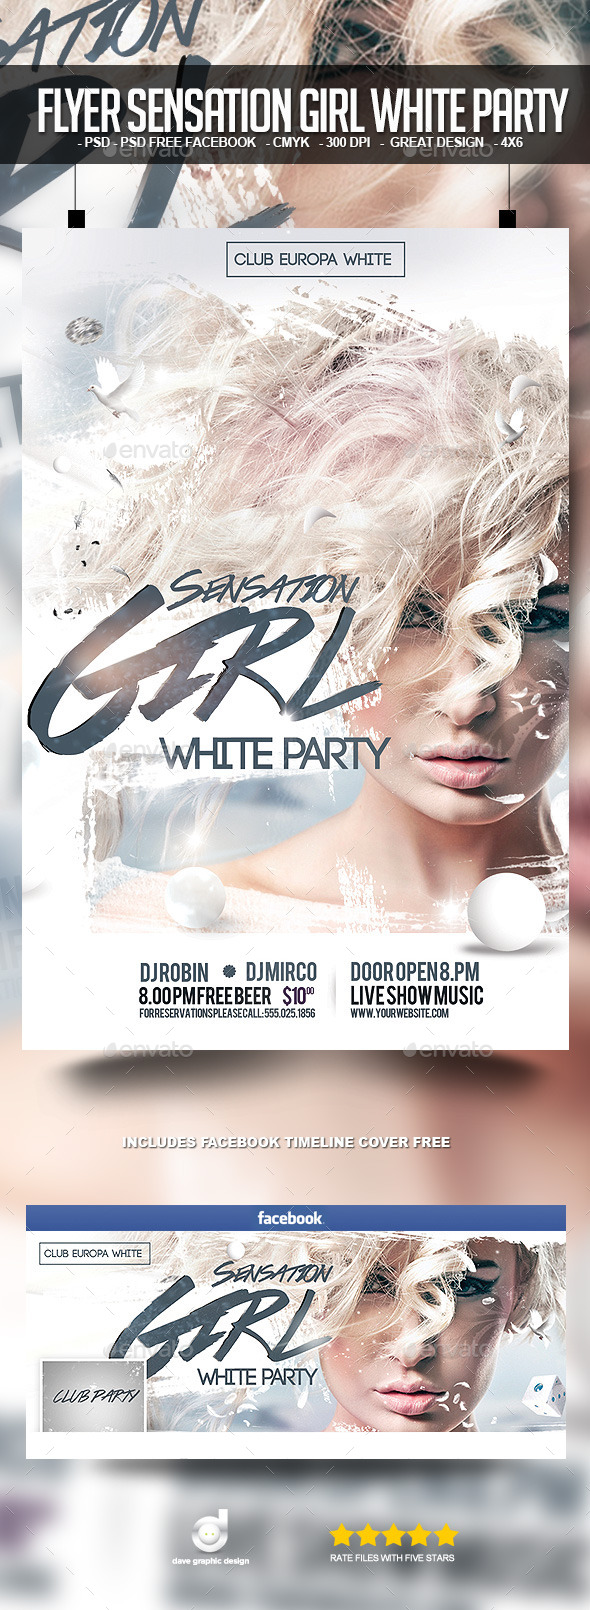 Flyer Sensation Girl White Party - Clubs & Parties Events